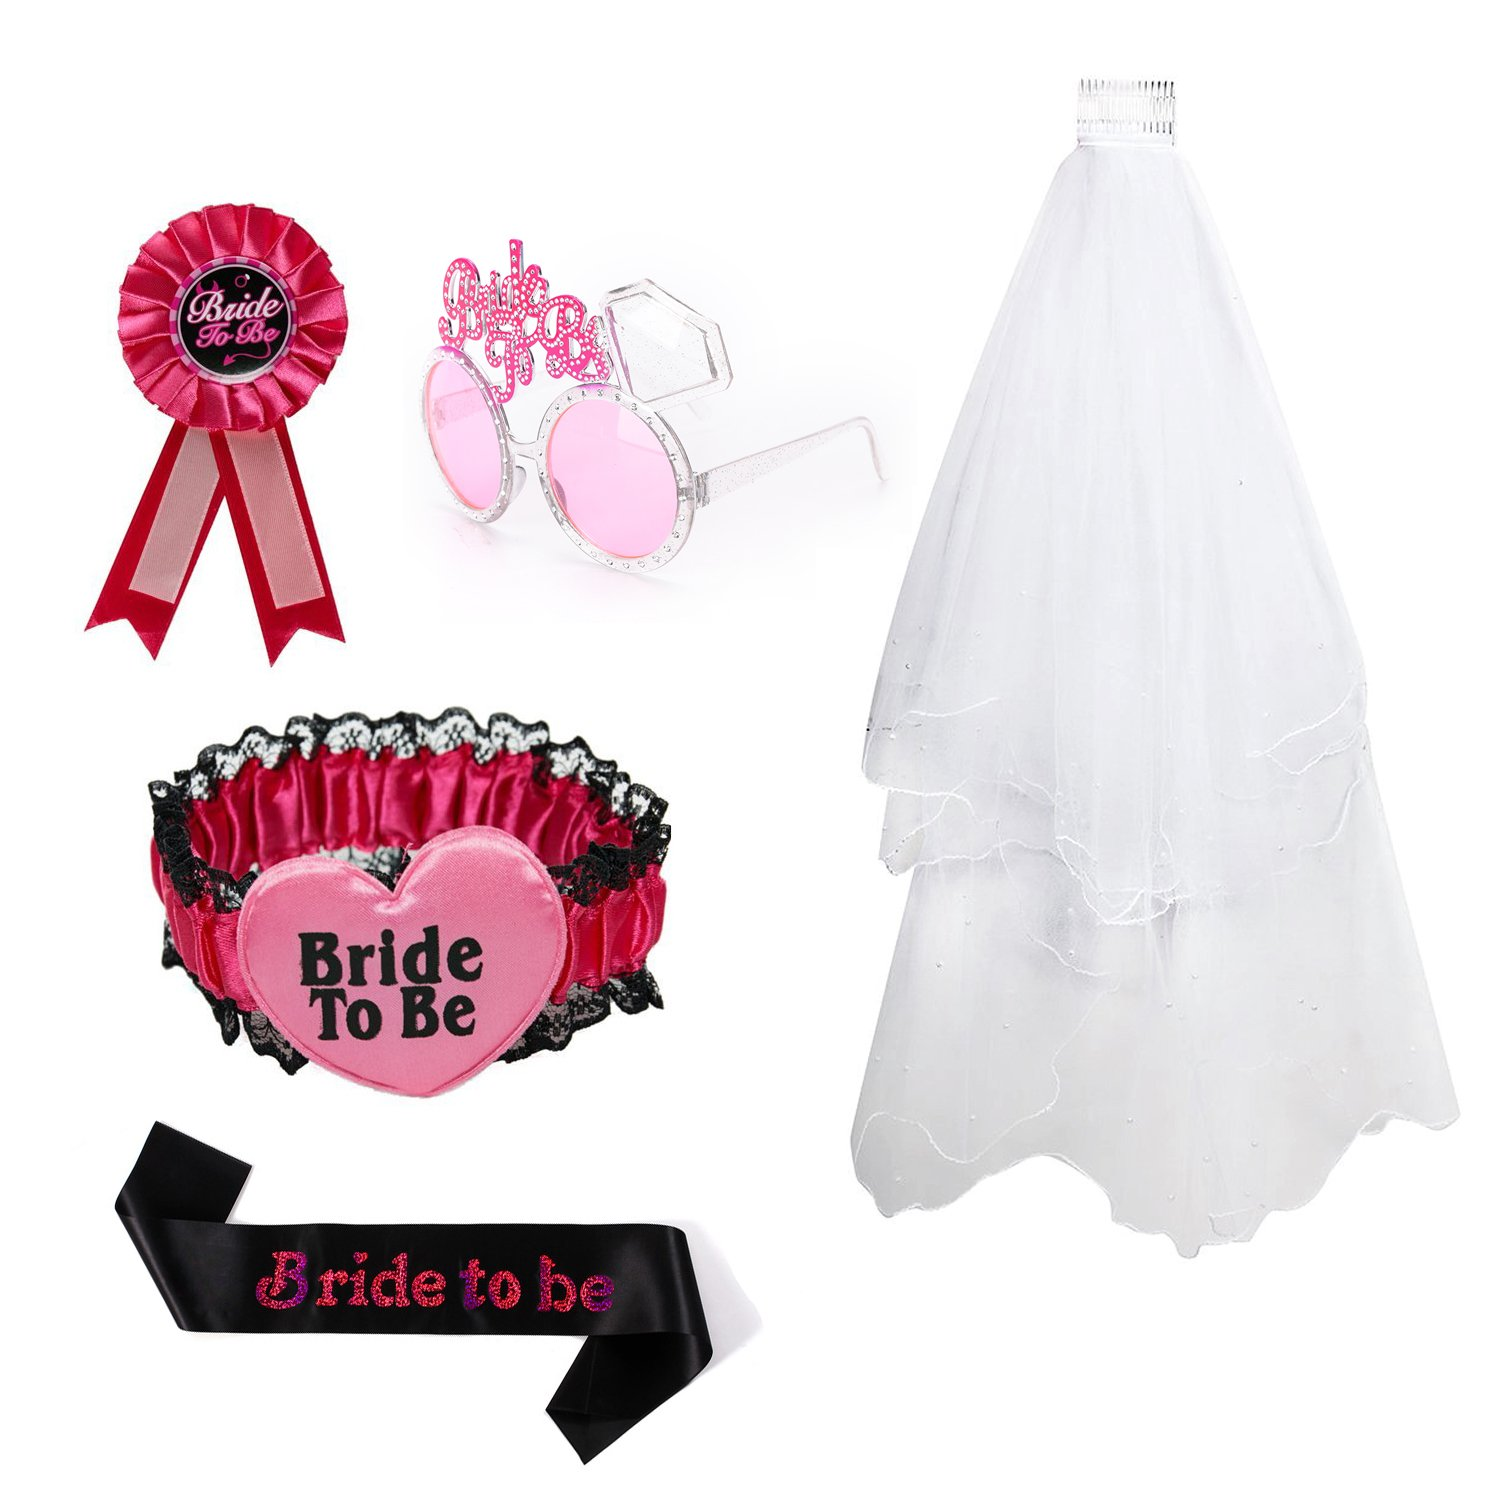 Tdmall Bachelorette Party Accessory - Perfect Bride to Be Set for Bridal Shower Decorations & Party Supplies (C)